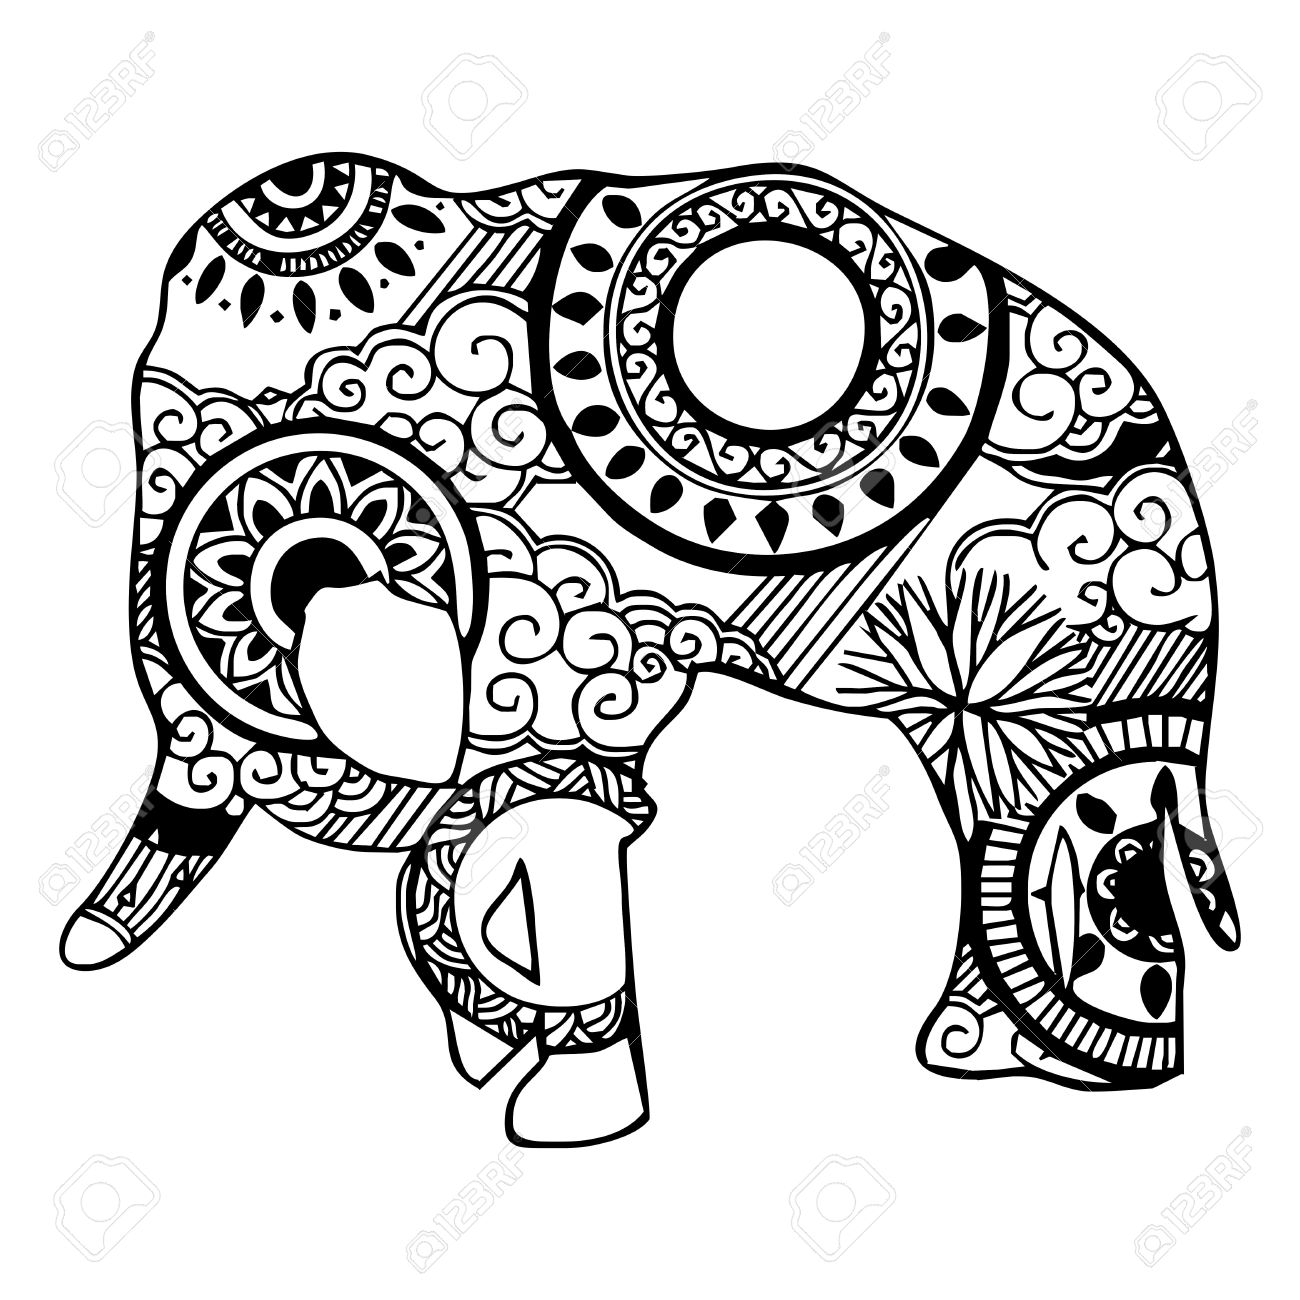 Elephant Tribal Drawing At Getdrawings